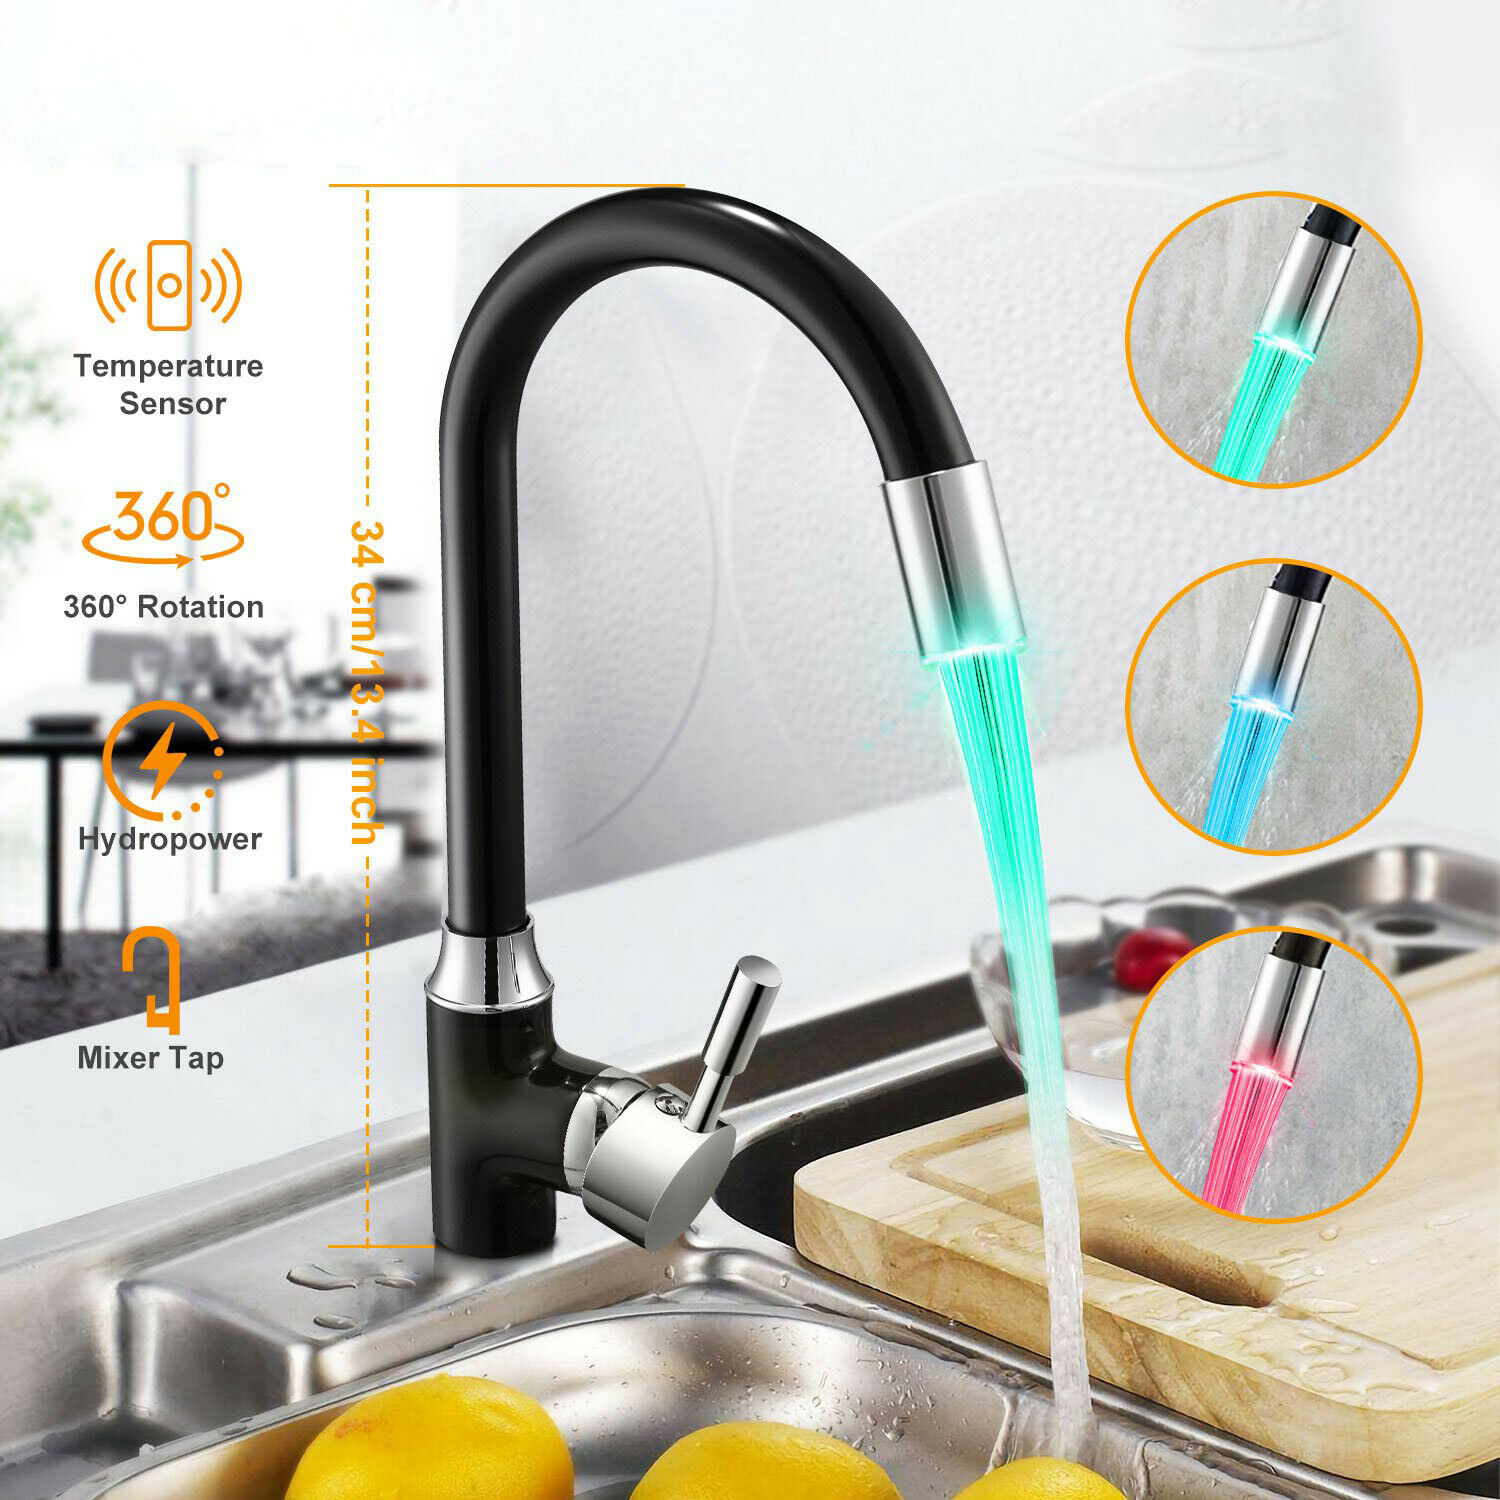 Led Kitchen Faucet With Temperature Control Light Hot And Cold Water Tap Handle Hole Rotatable Sink Mixer Tap Kitchen Faucets Aliexpress